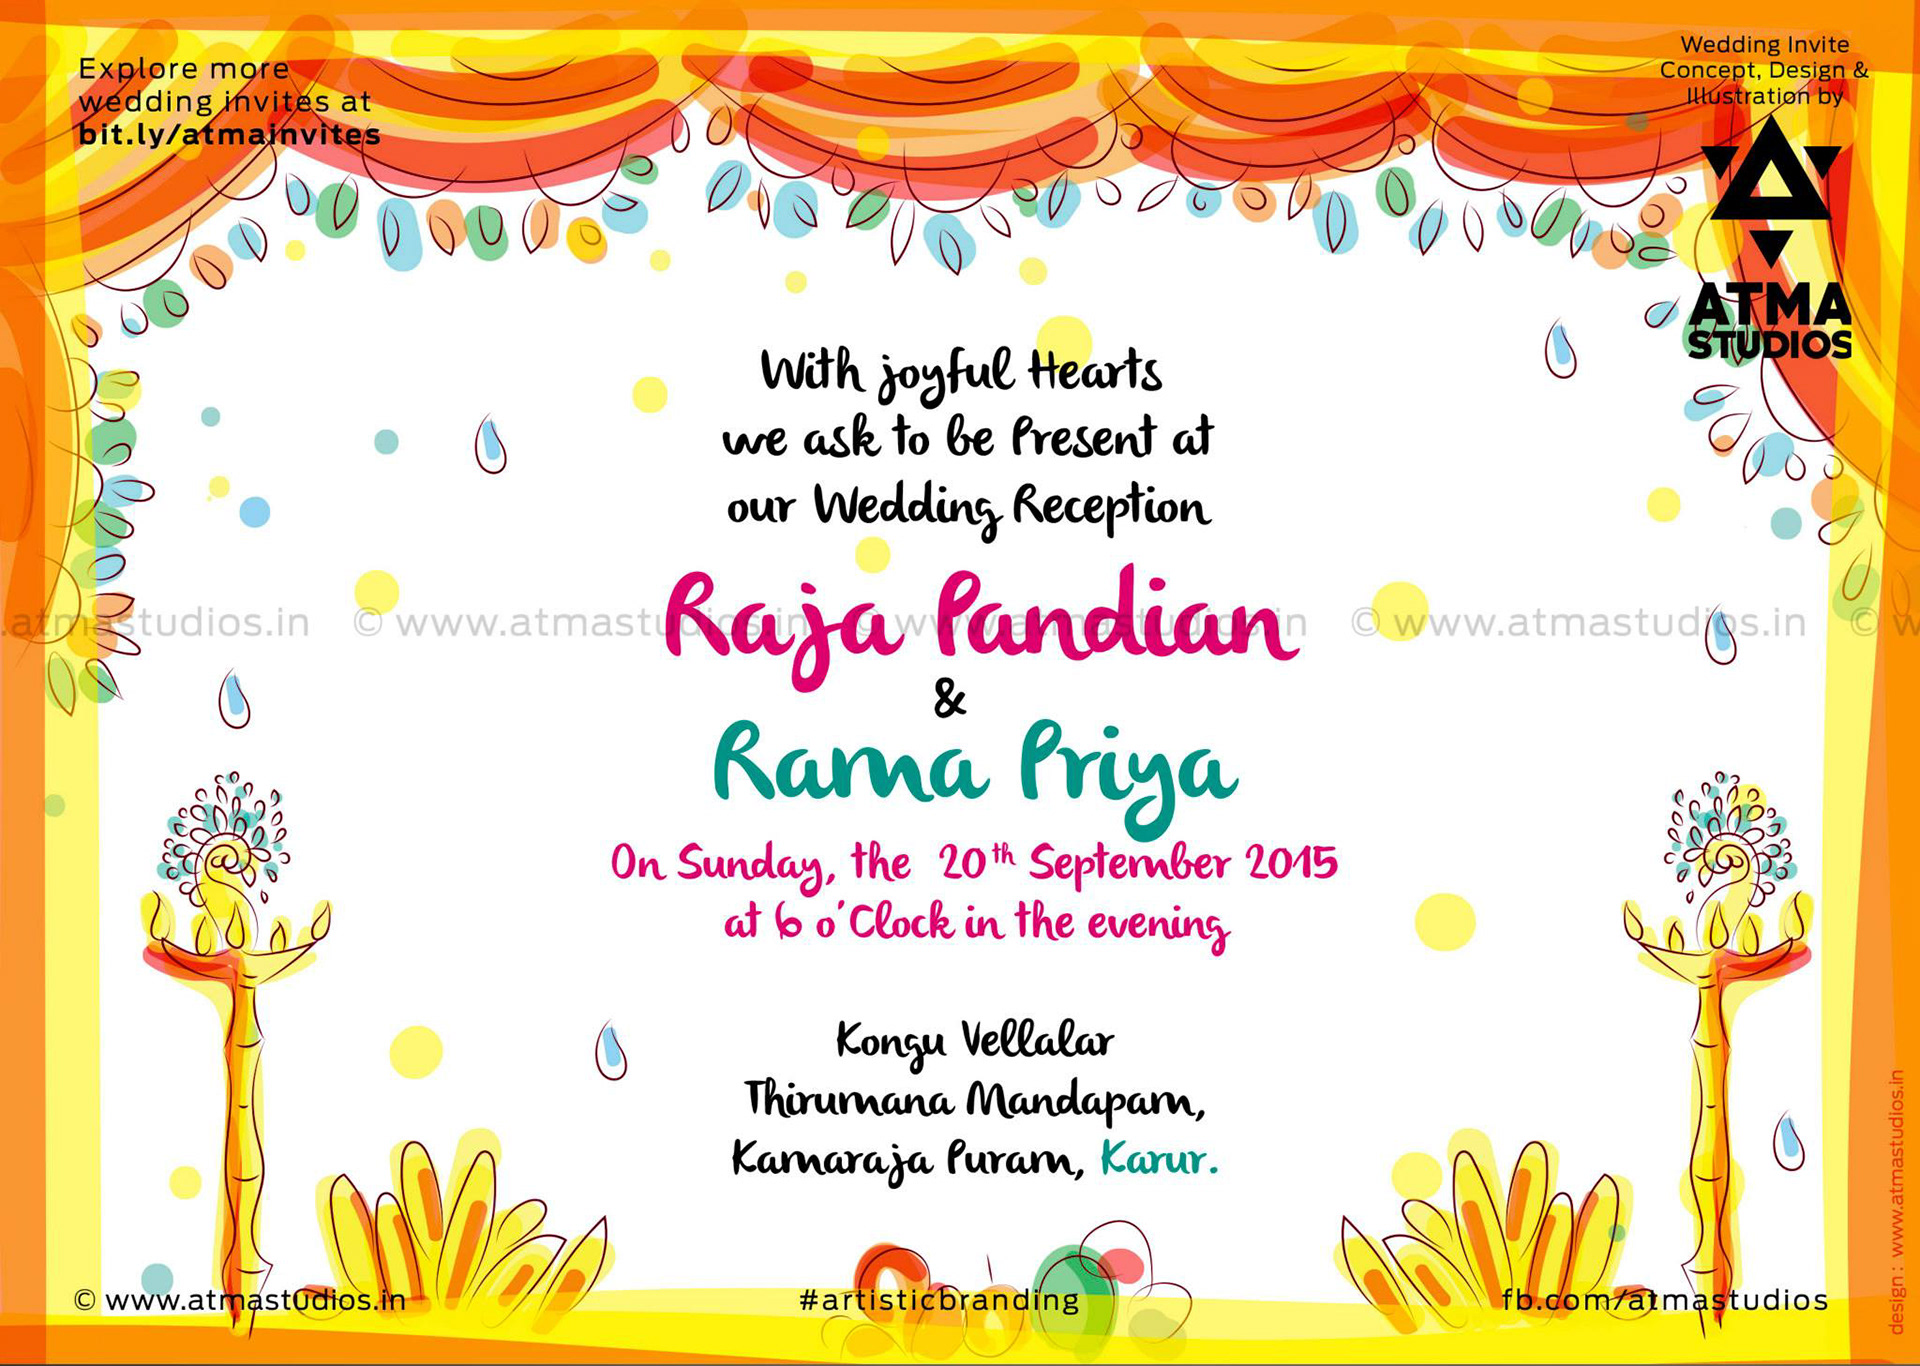 Scd balaji quirky creative indian wedding invitations quirky size a5 front back card card cover gsm 300 cover card lamination glossy lamination rs 50 per card rs 15 per cover stopboris Images